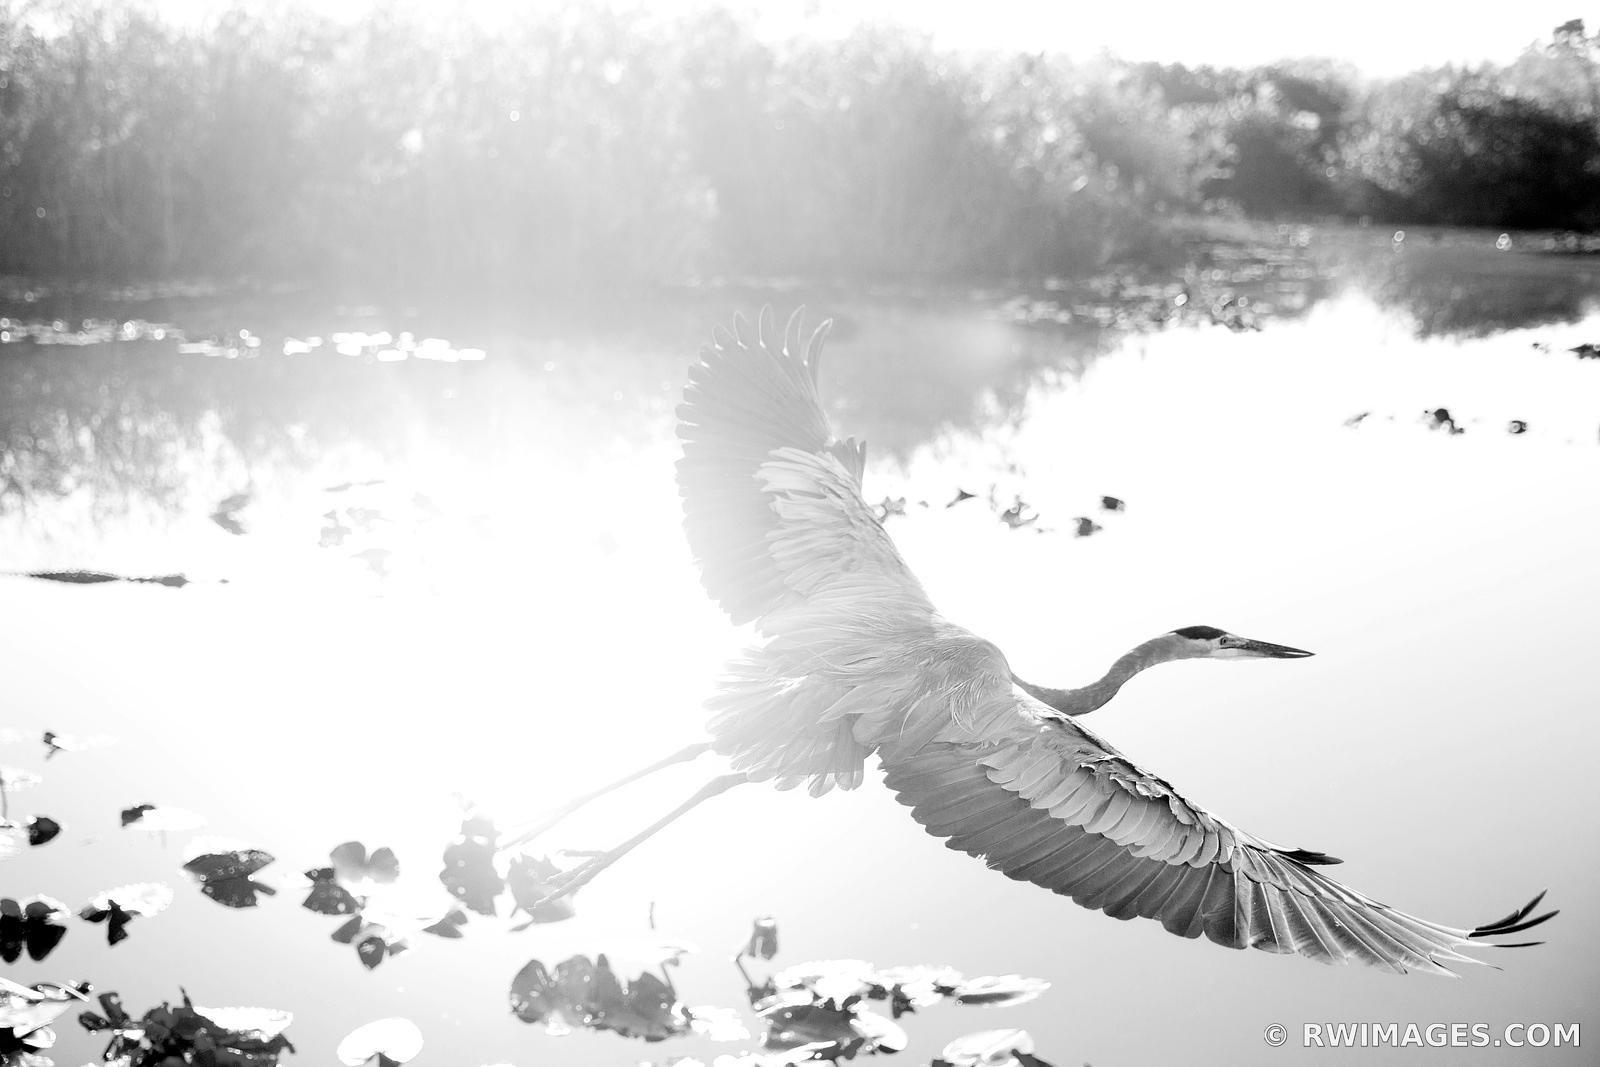 GREAT BLUE HERON ANHINGA TRAIL EVERGLADES NATIONAL PARK FLORIDA NATURE BLACK AND WHITE